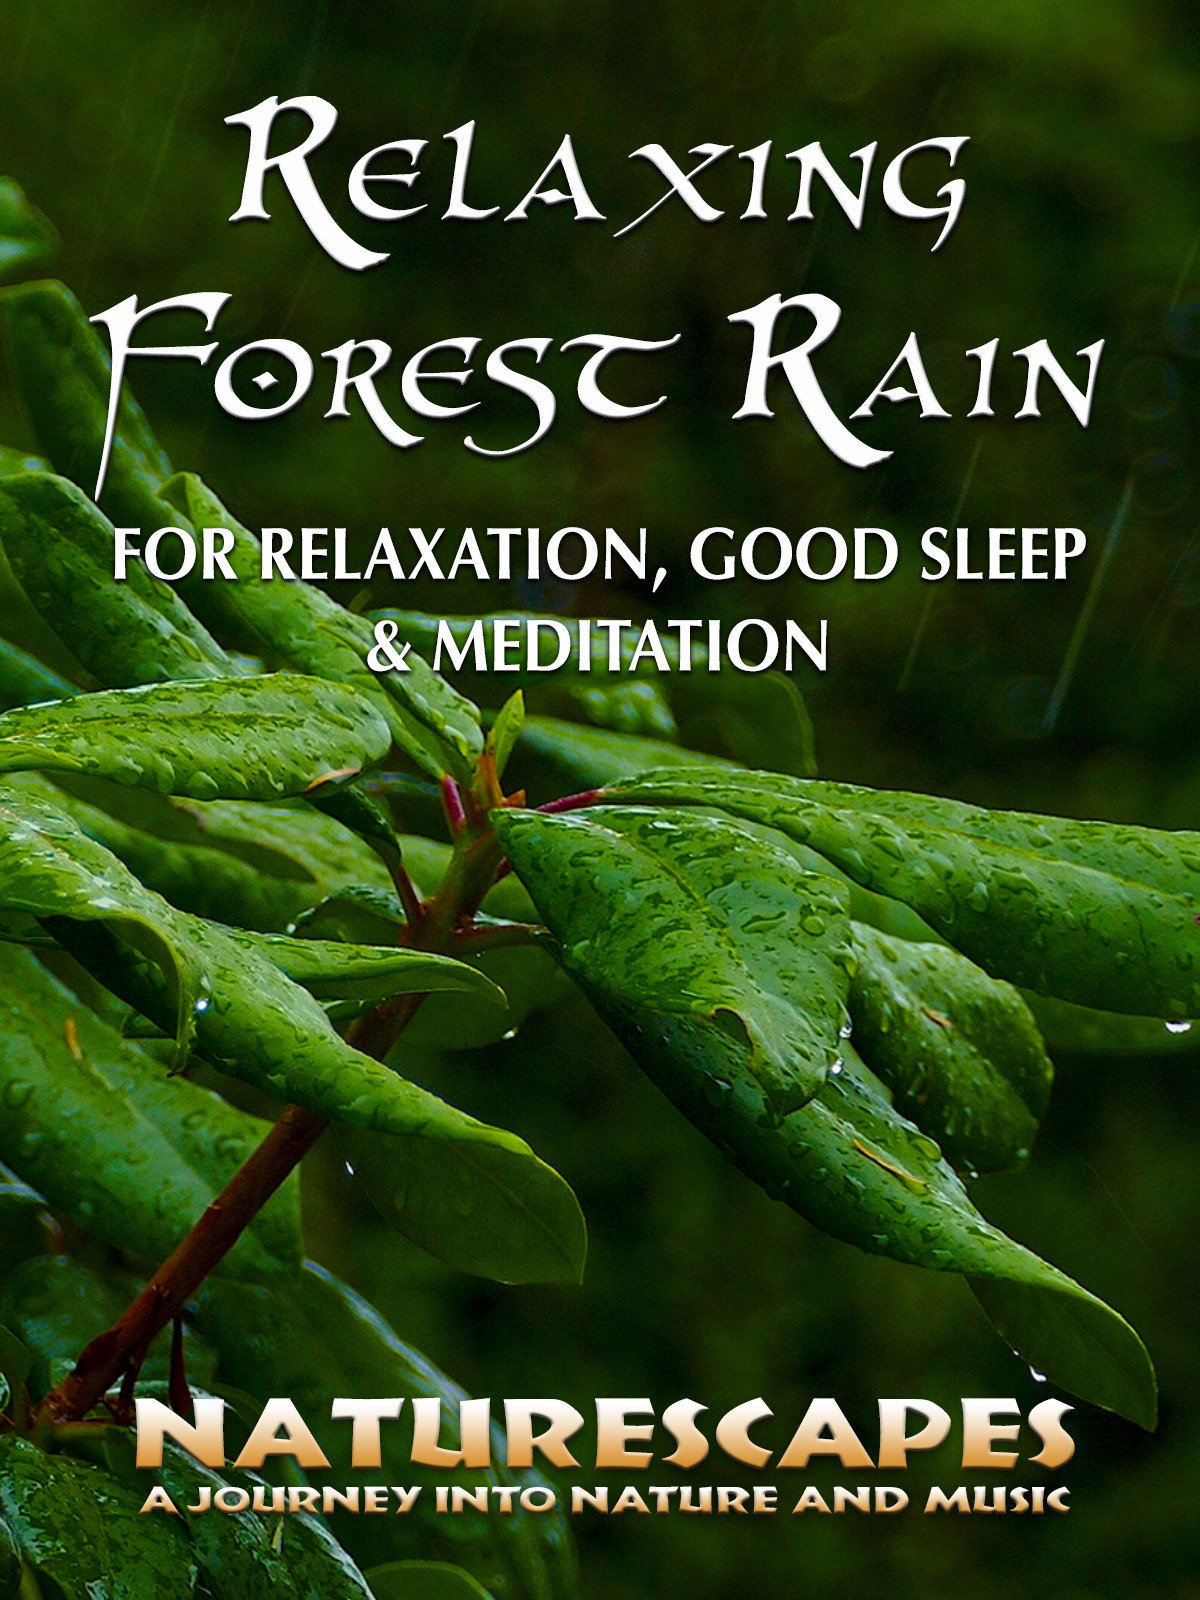 Relaxing Forest Rain for Relaxation, Sleep & Meditation